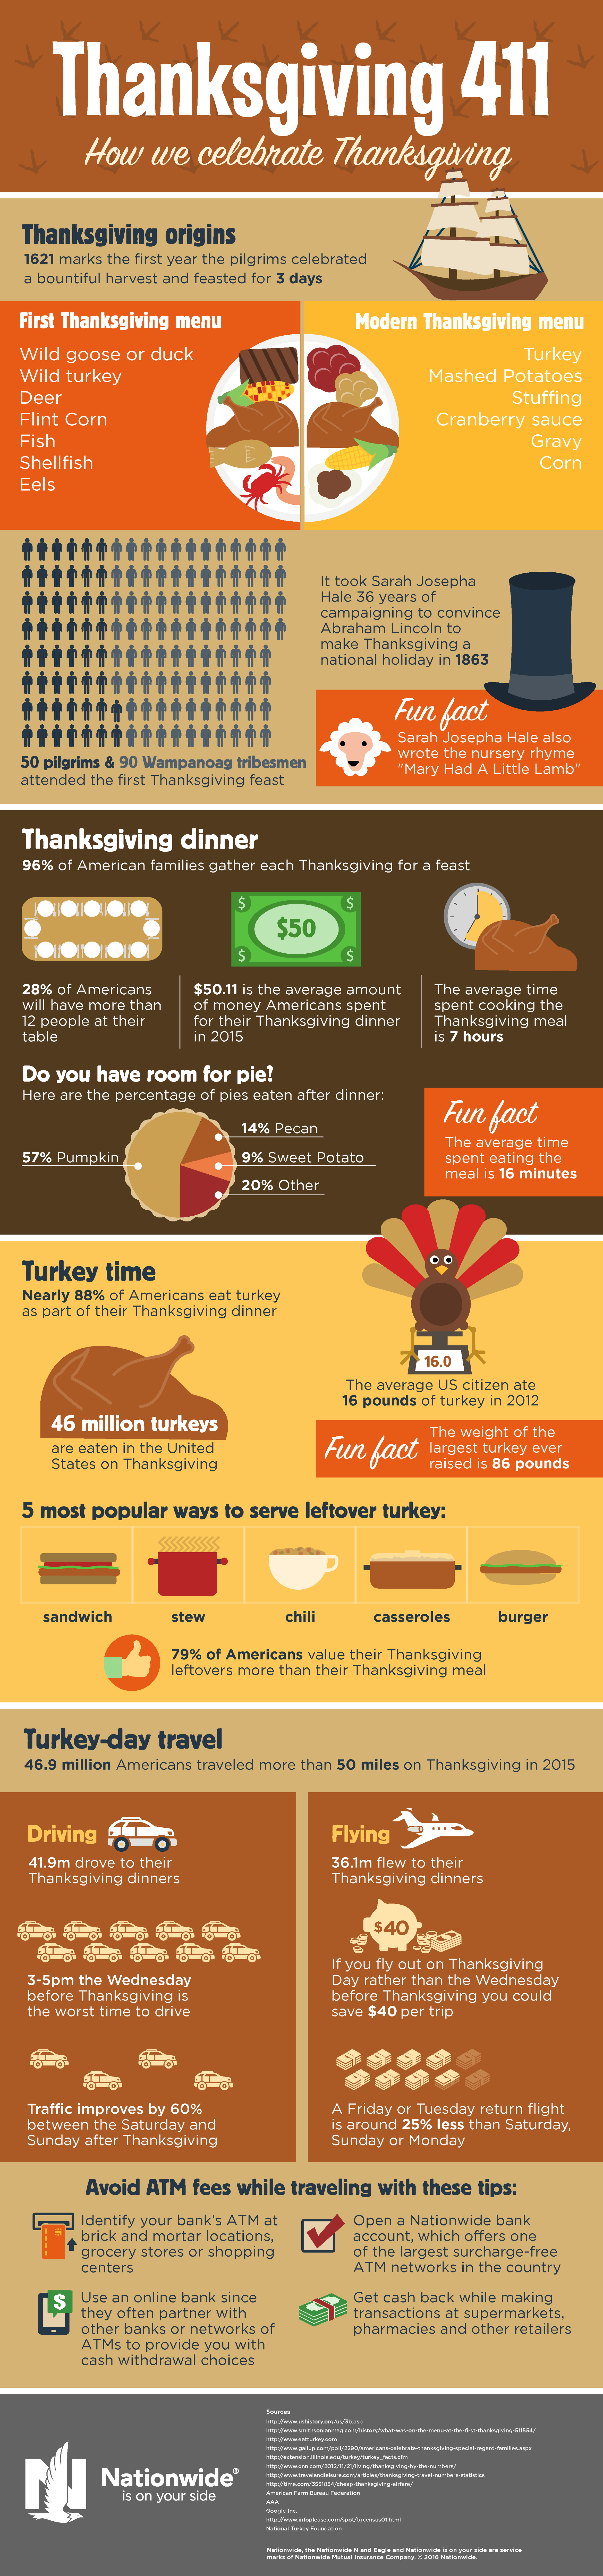 Thanksgiving Stats Infographic